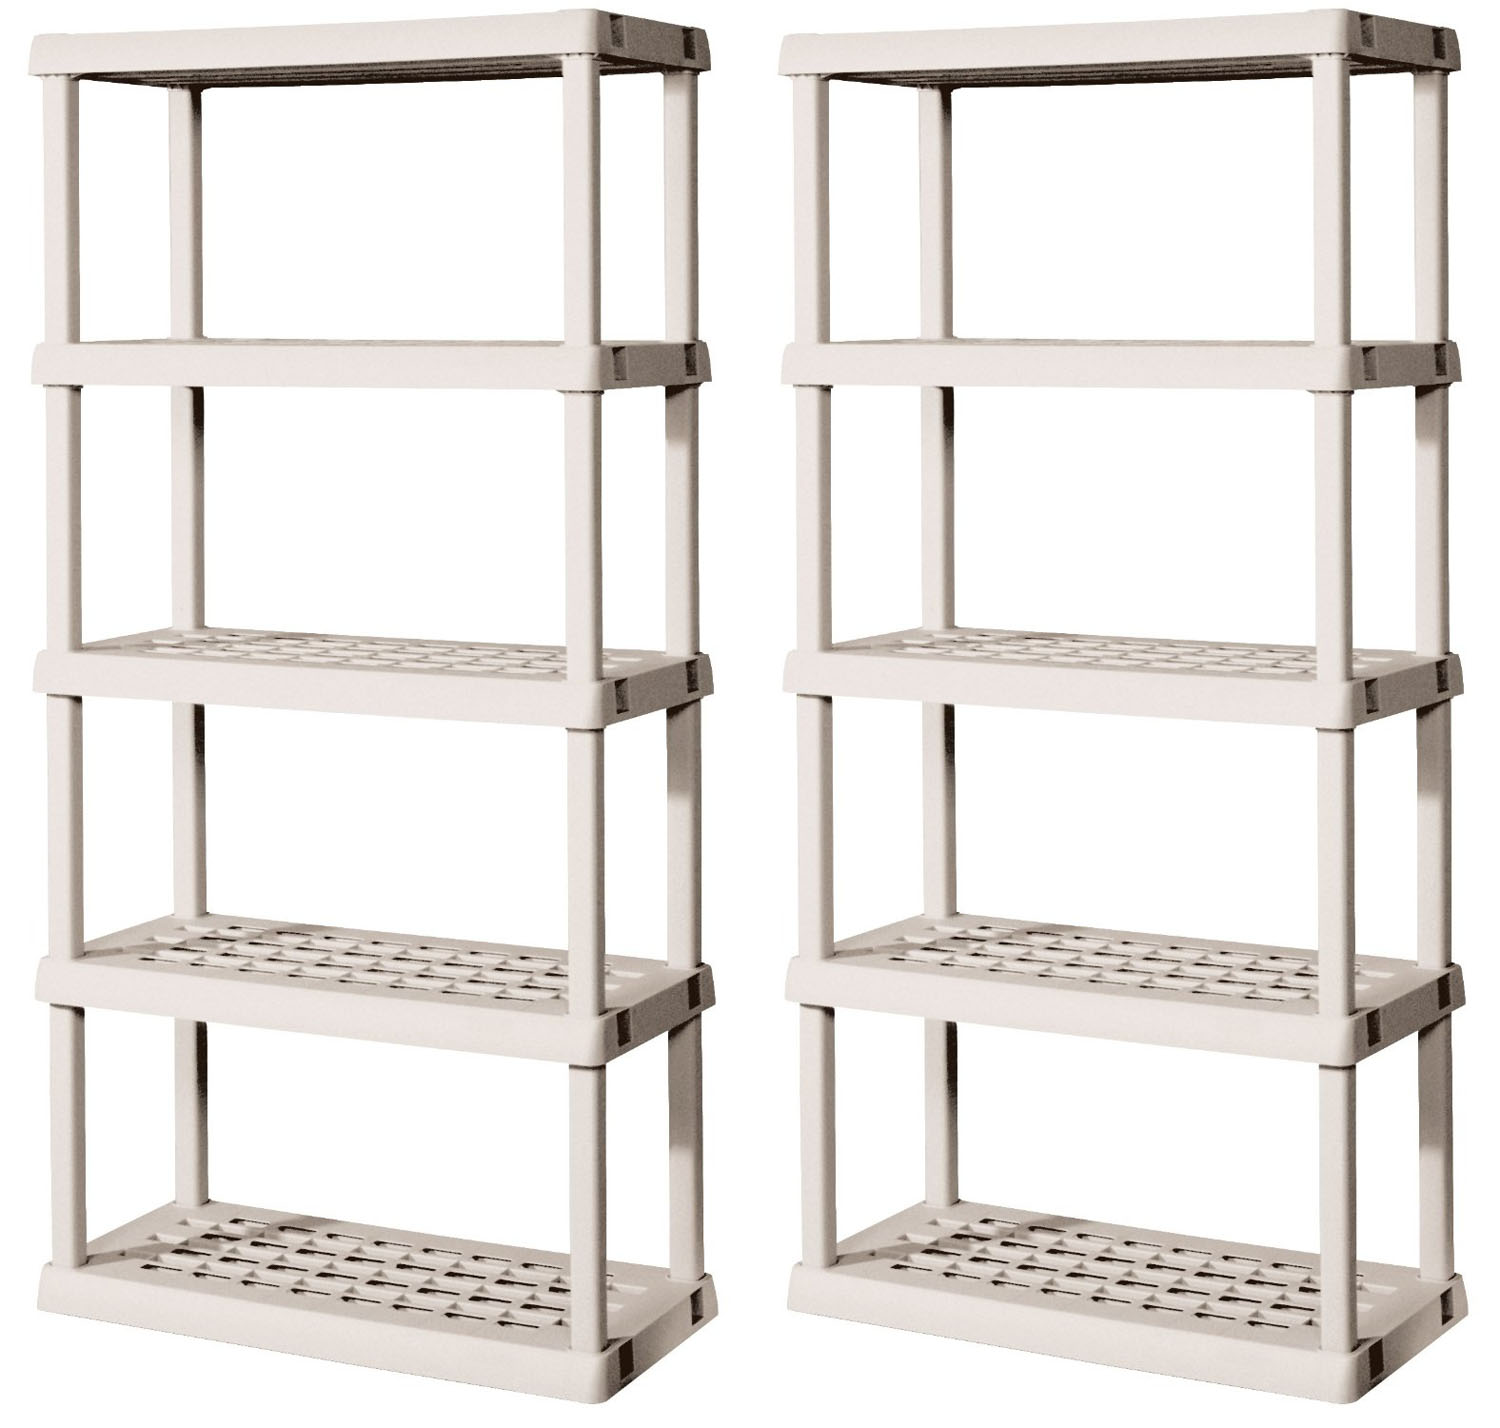 2) Sterilite 01558501 Durable 5-Shelf Upright Ventilated Shelving Storage Units